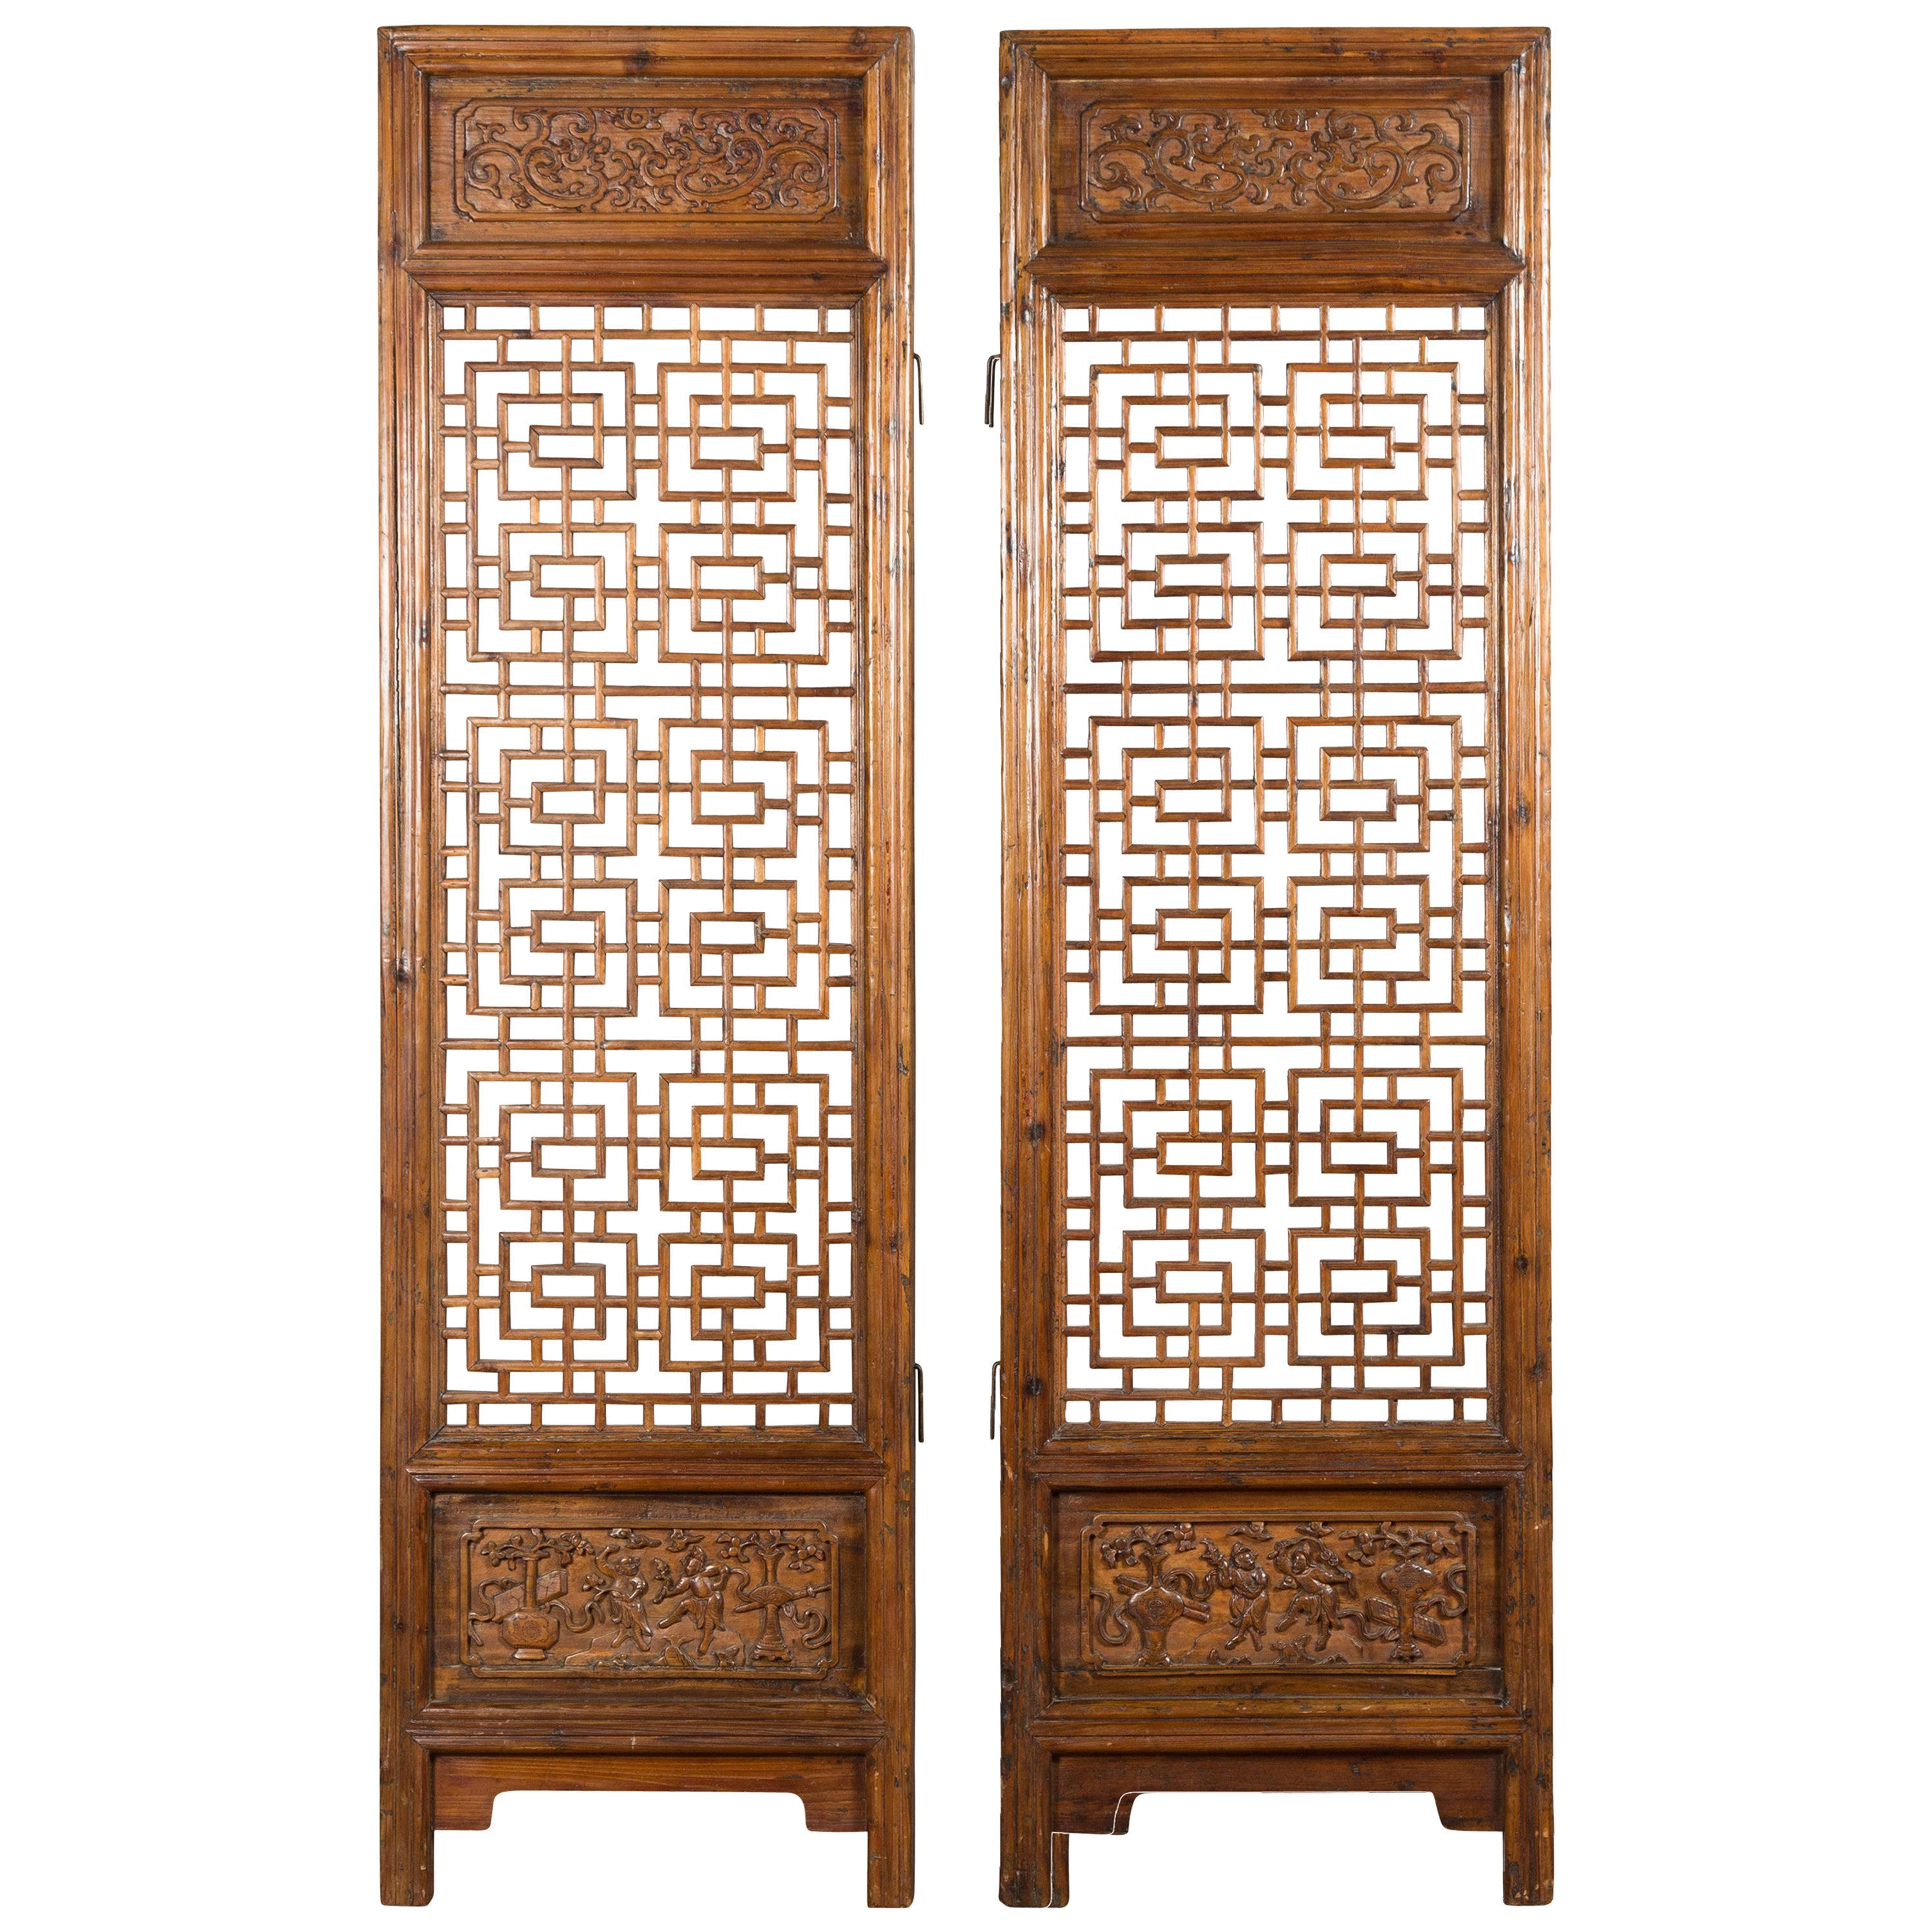 Pair of Chinese 19th Century Screens with Fretwork and Low-Relief Carved Panels